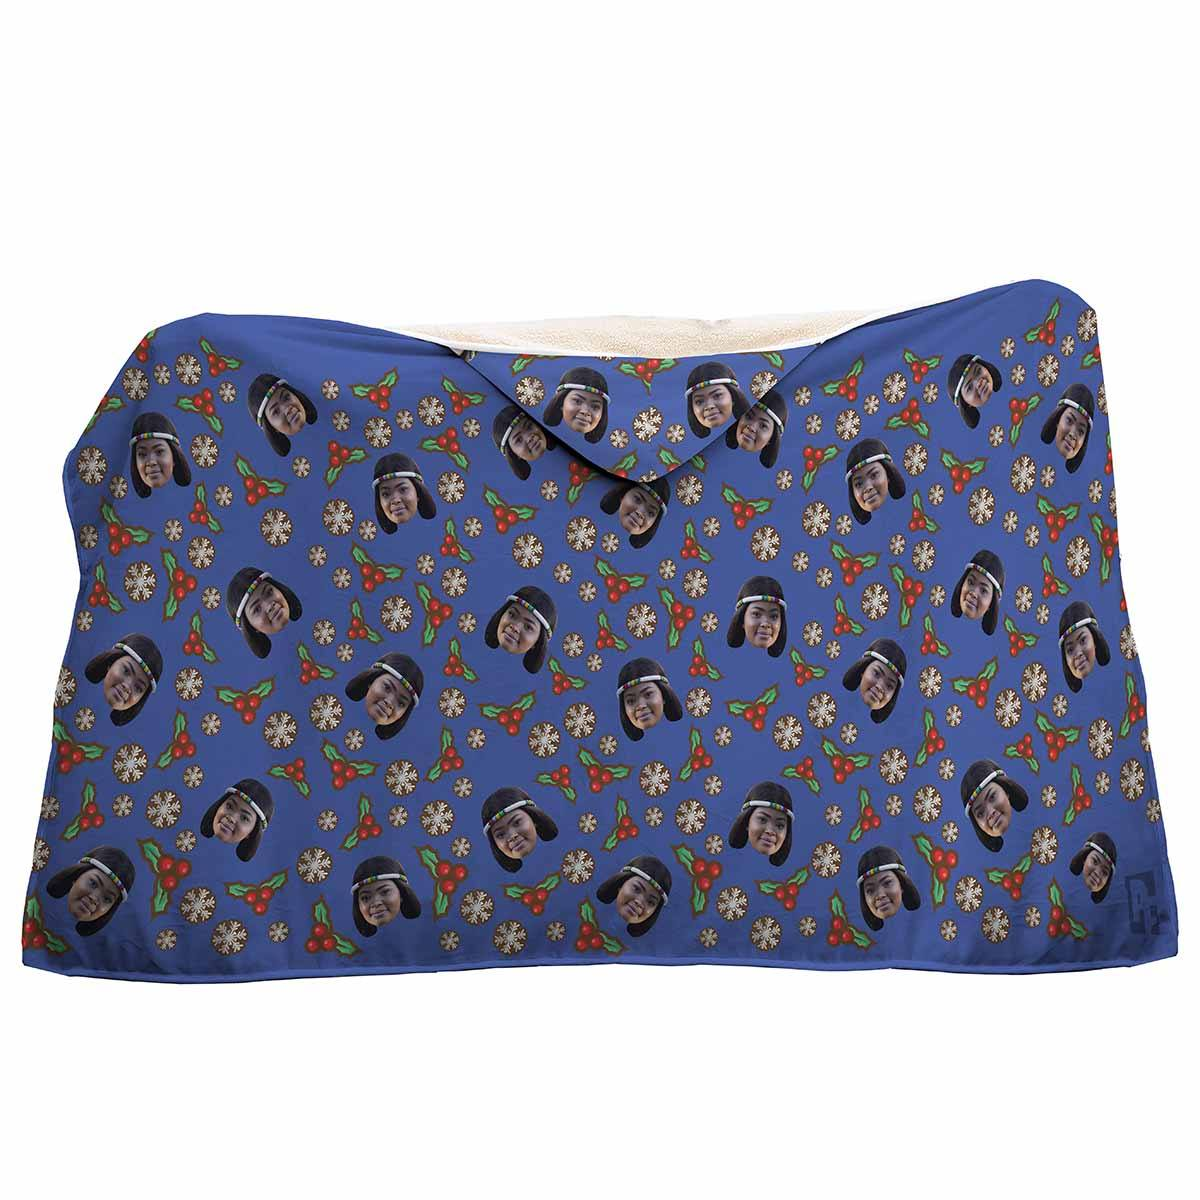 darkblue Mistletoe hooded blanket personalized with photo of face printed on it